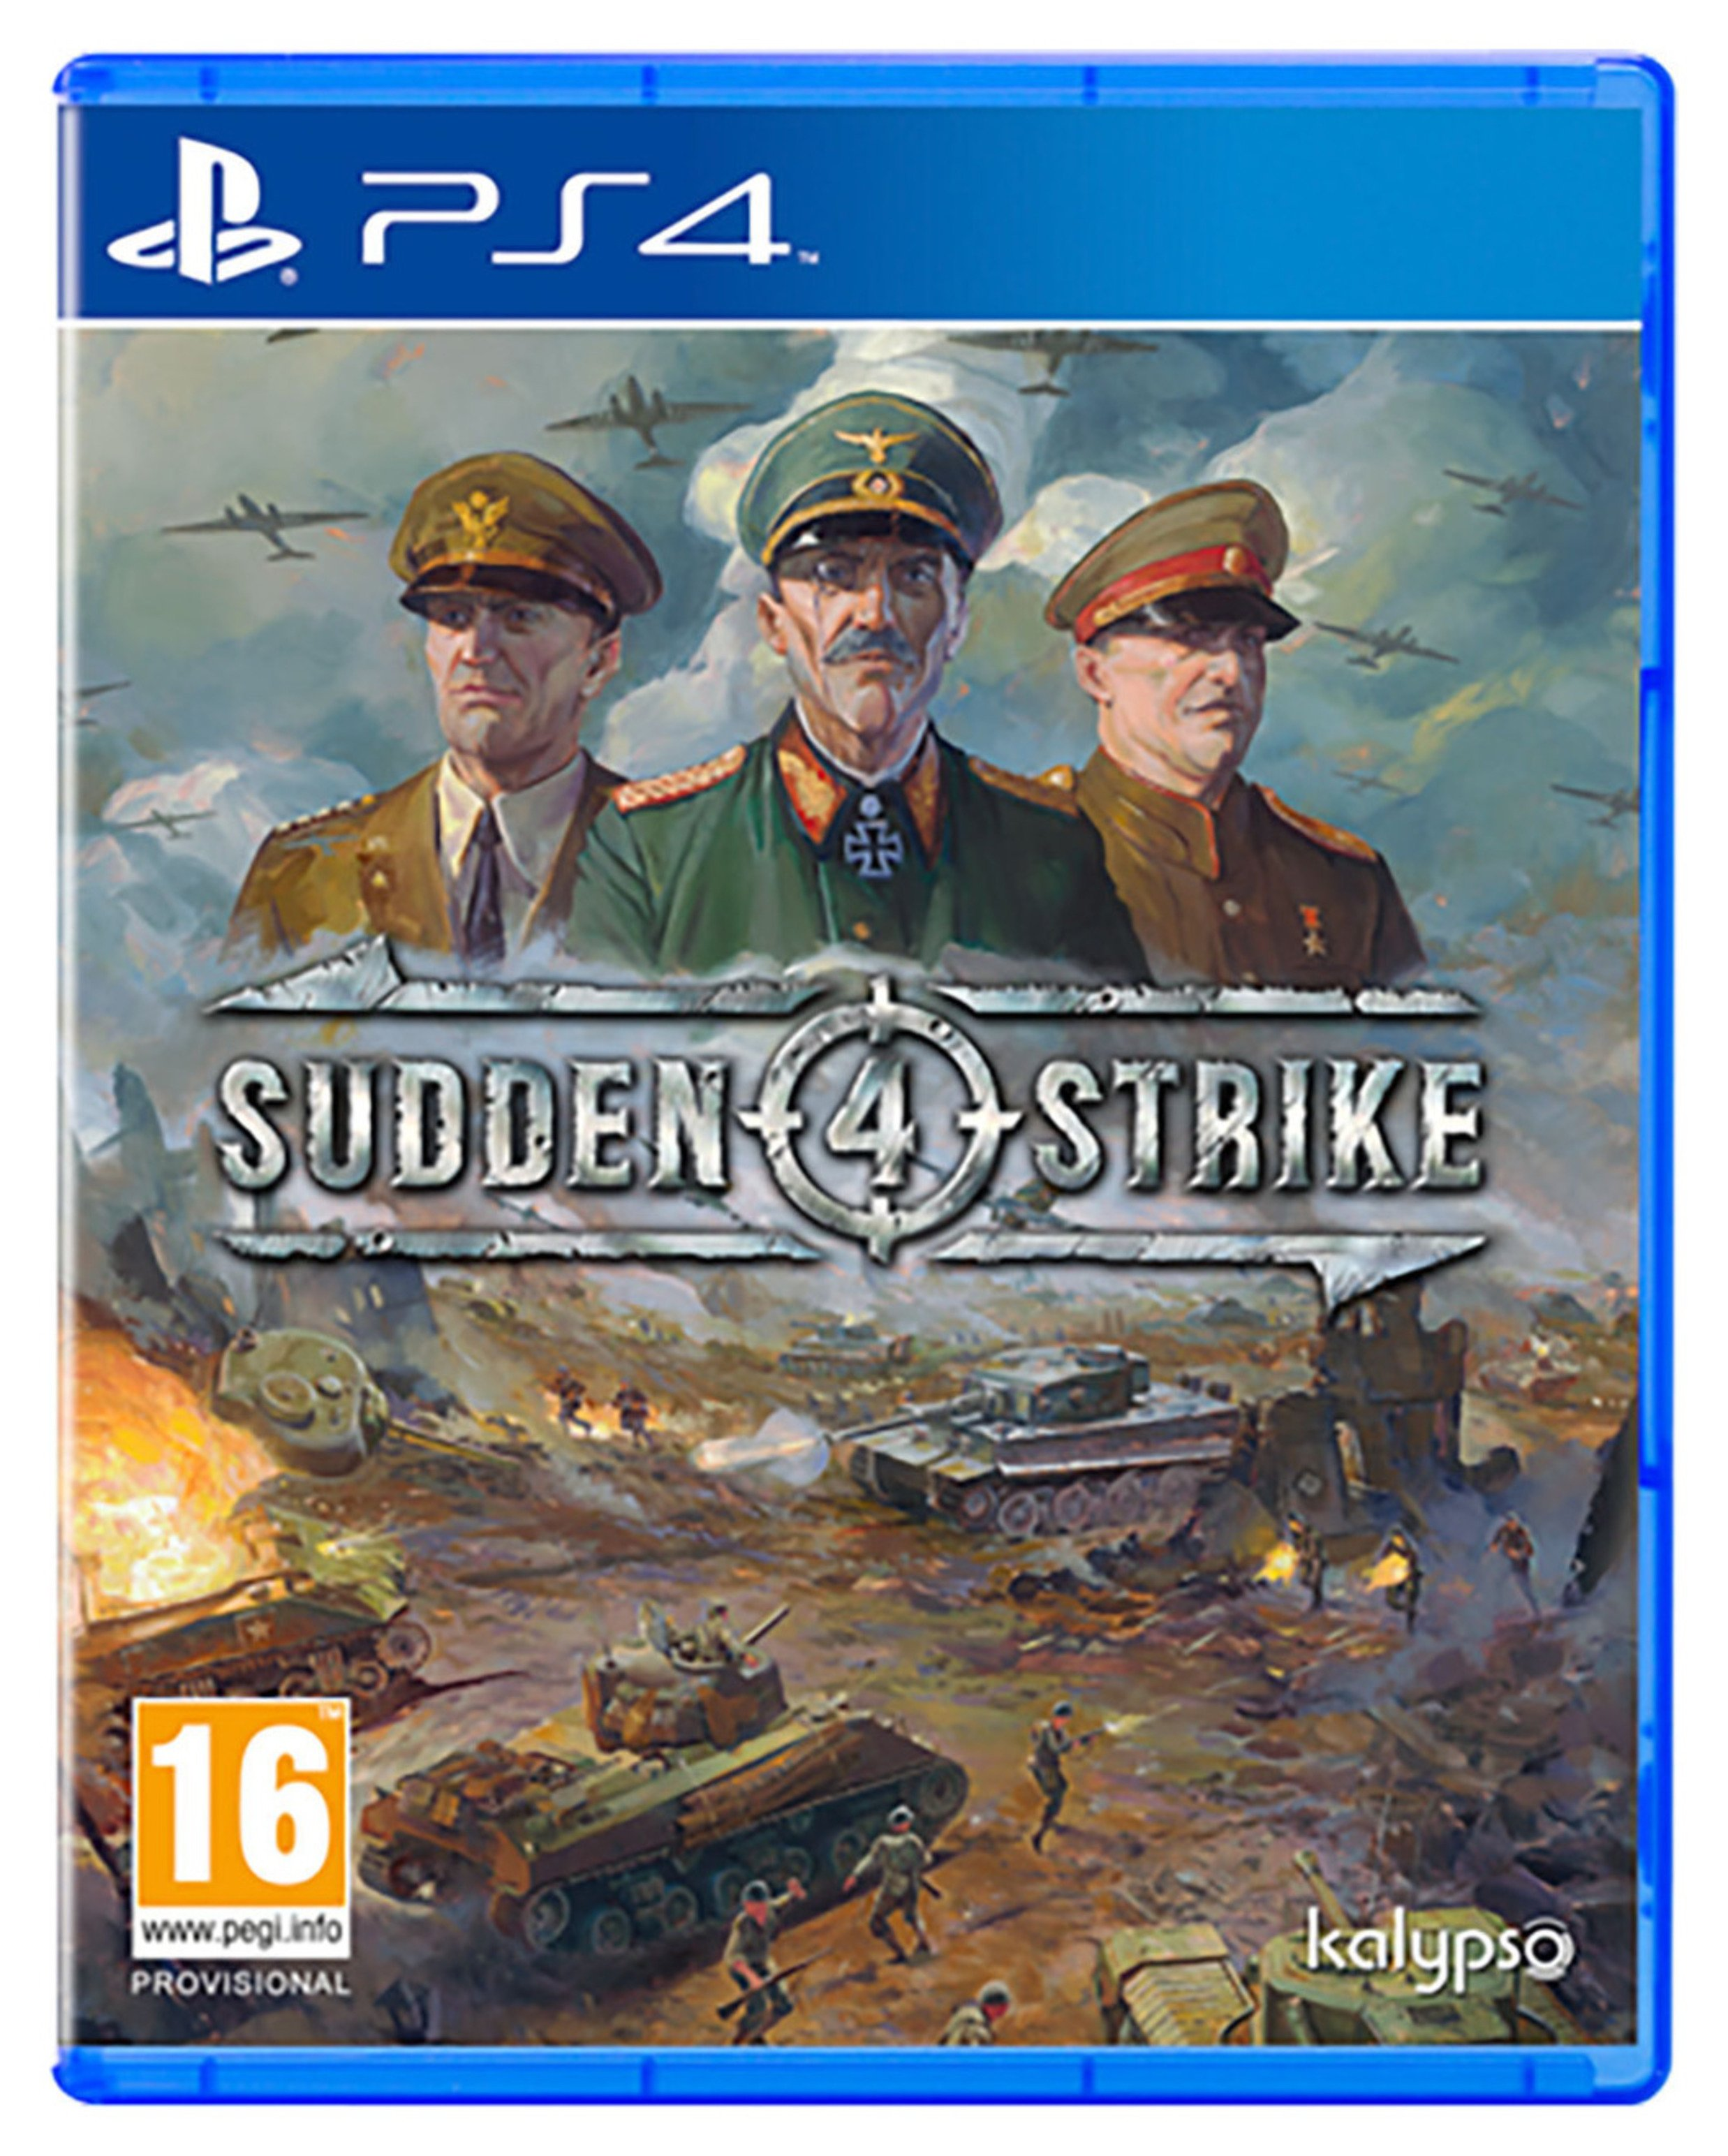 Sudden Strike 4 PS4 Game